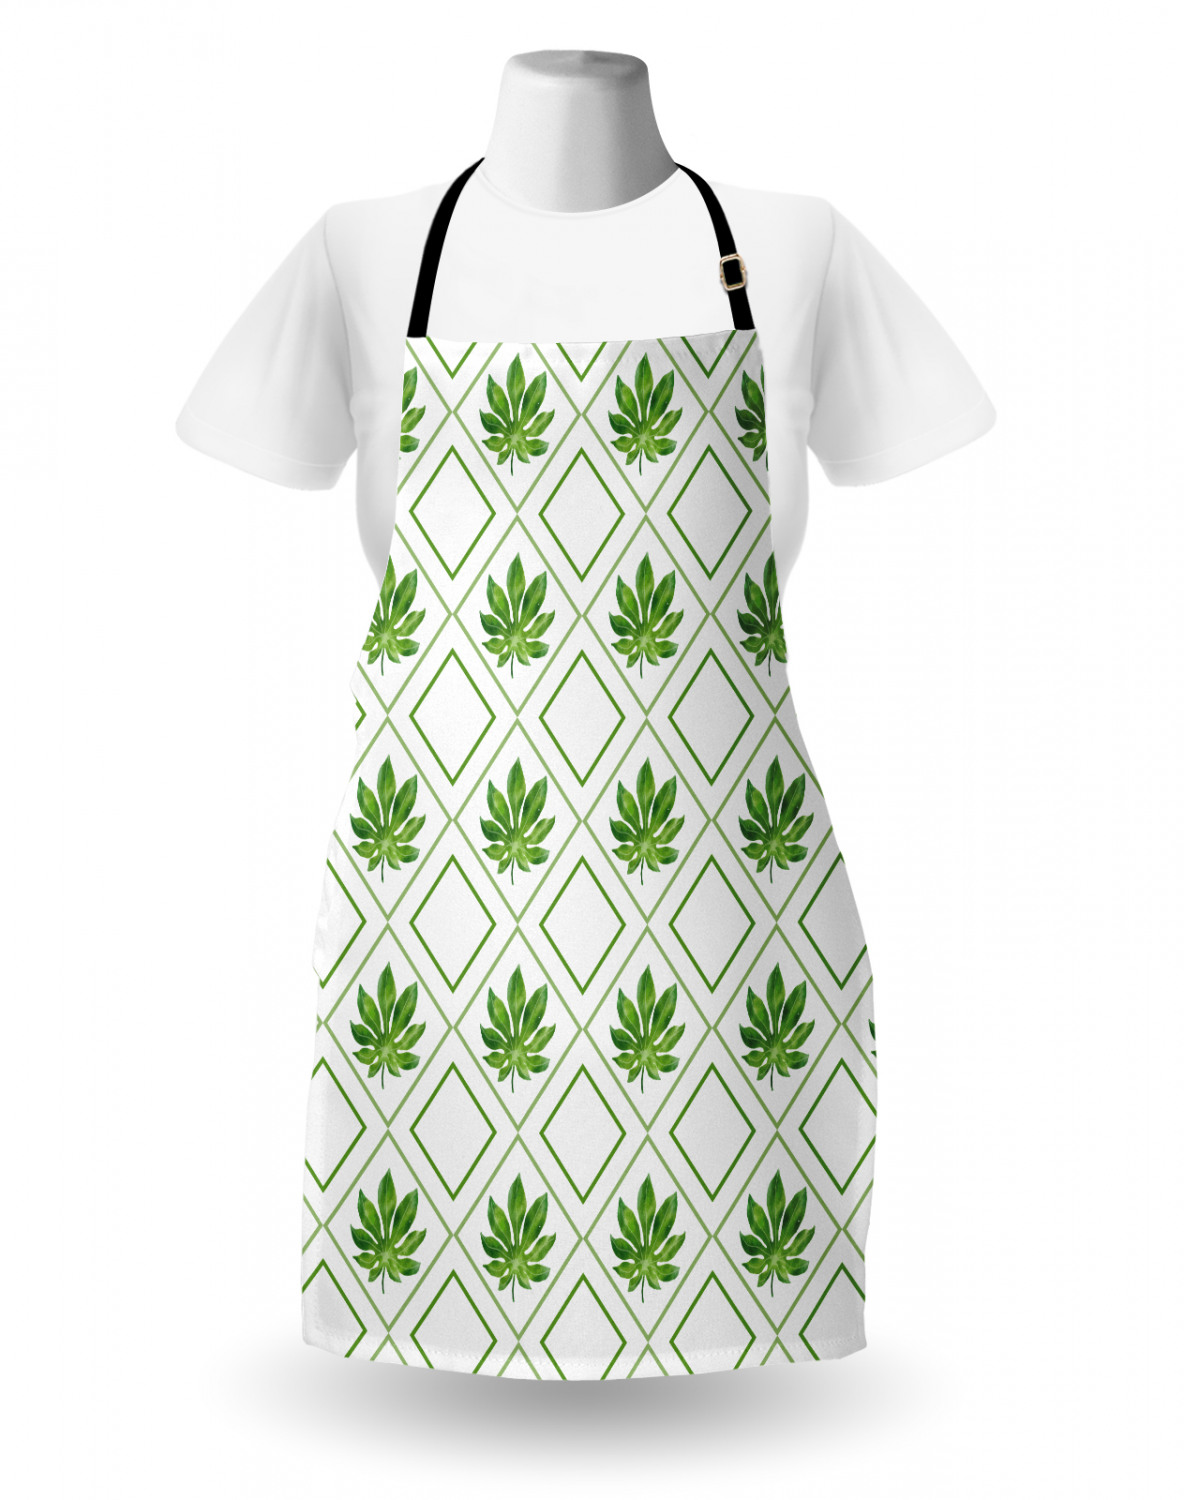 Ambesonne-Outdoor-Use-Apron-with-Adjustable-Neck-Strap-for-Gardening-and-Cooking miniatura 176